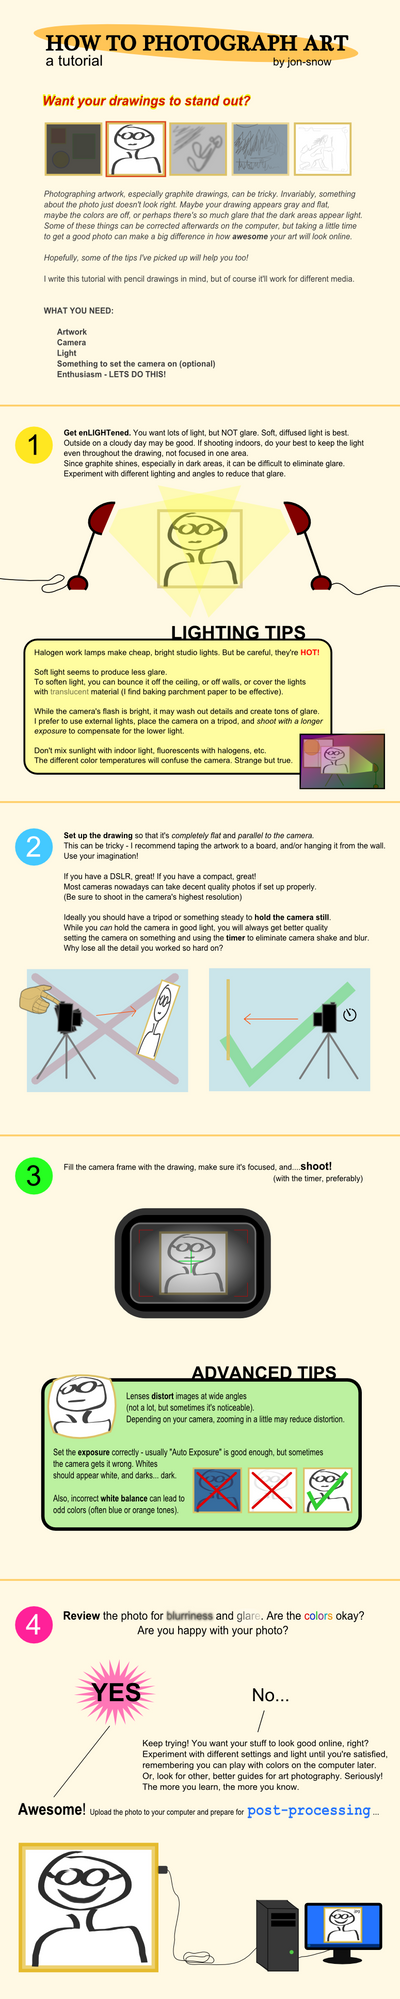 How to Photograph Art by Jon-Snow